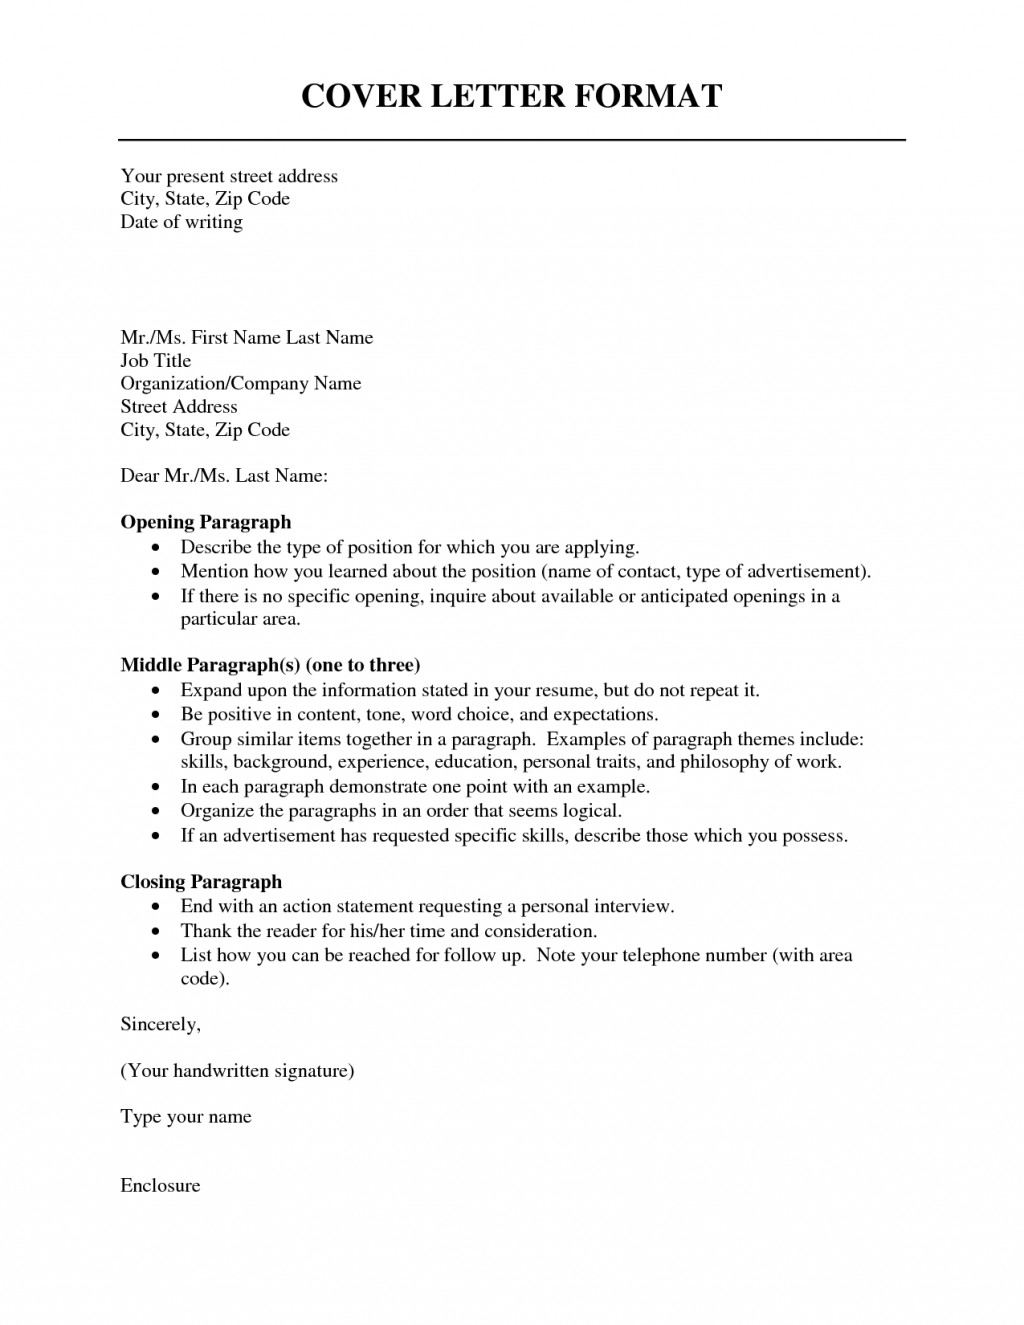 002 Essay Example Virginia Tech Application Caus Vt Students Information Technology Cover L Outstanding 2017 2016 Large